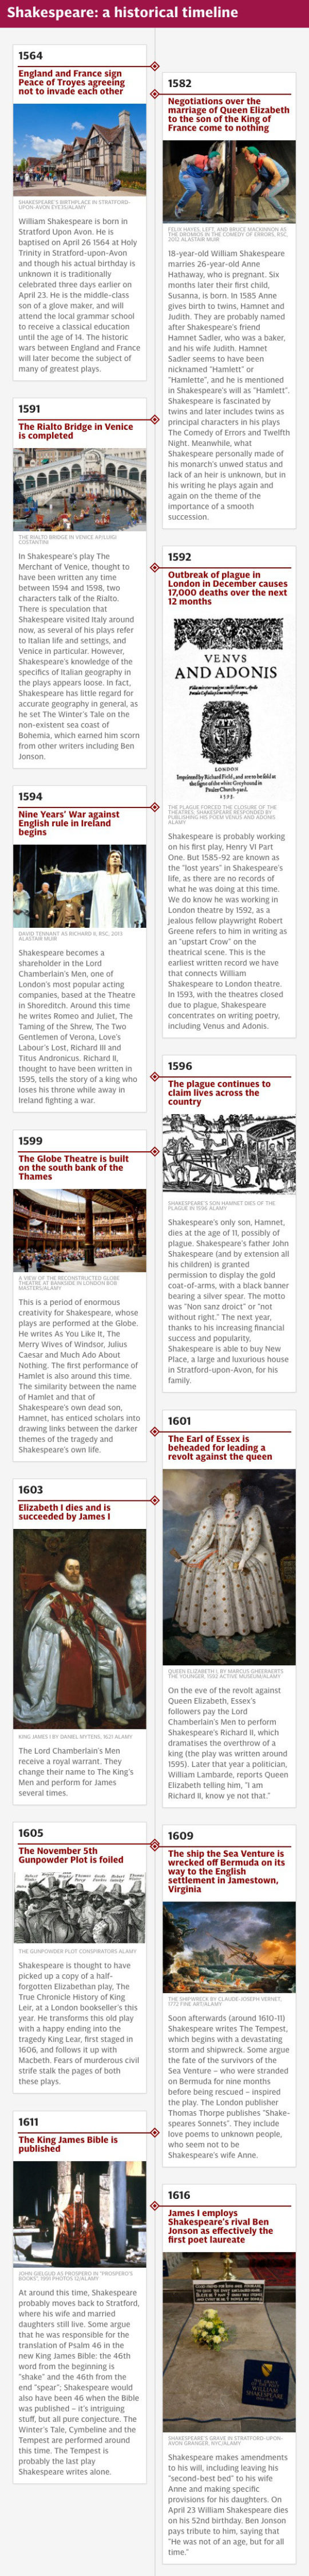 William Shakespeare: a historical timeline #infographic